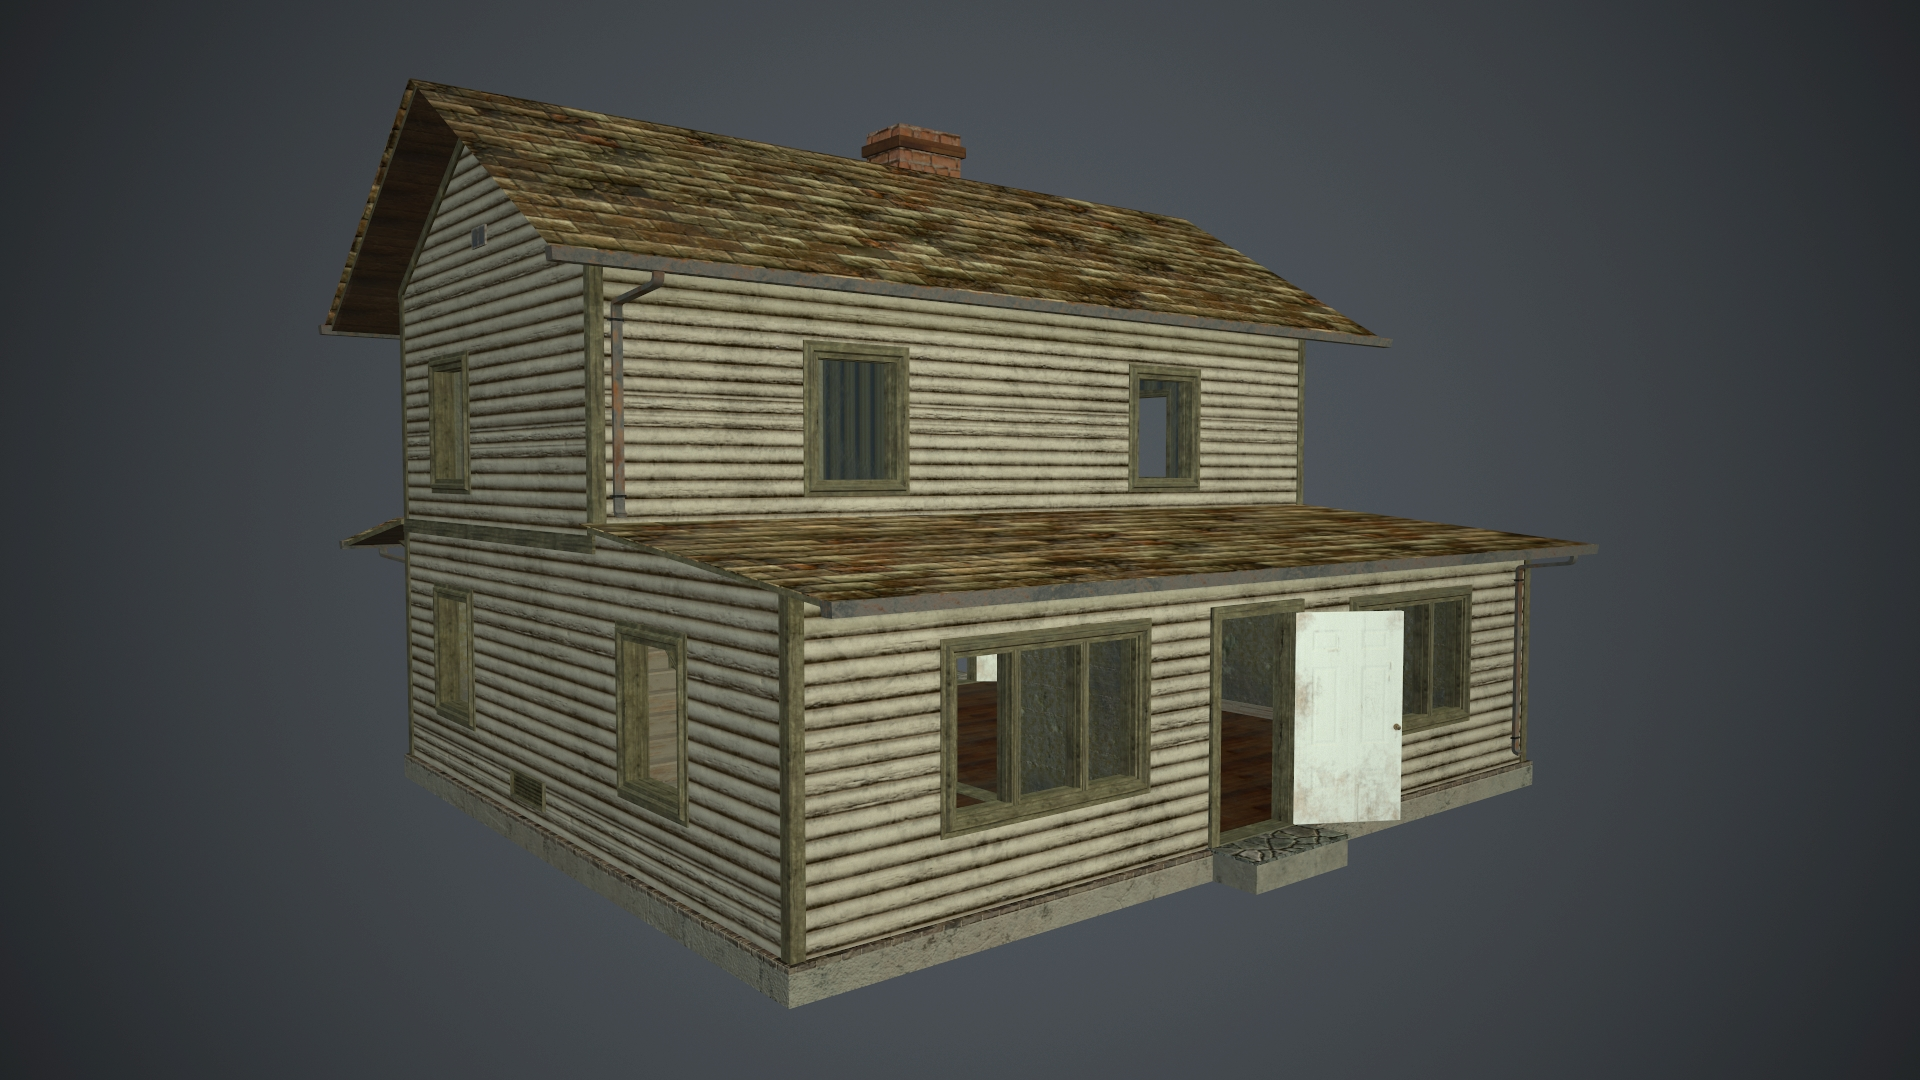 Town house in 3d max Other image